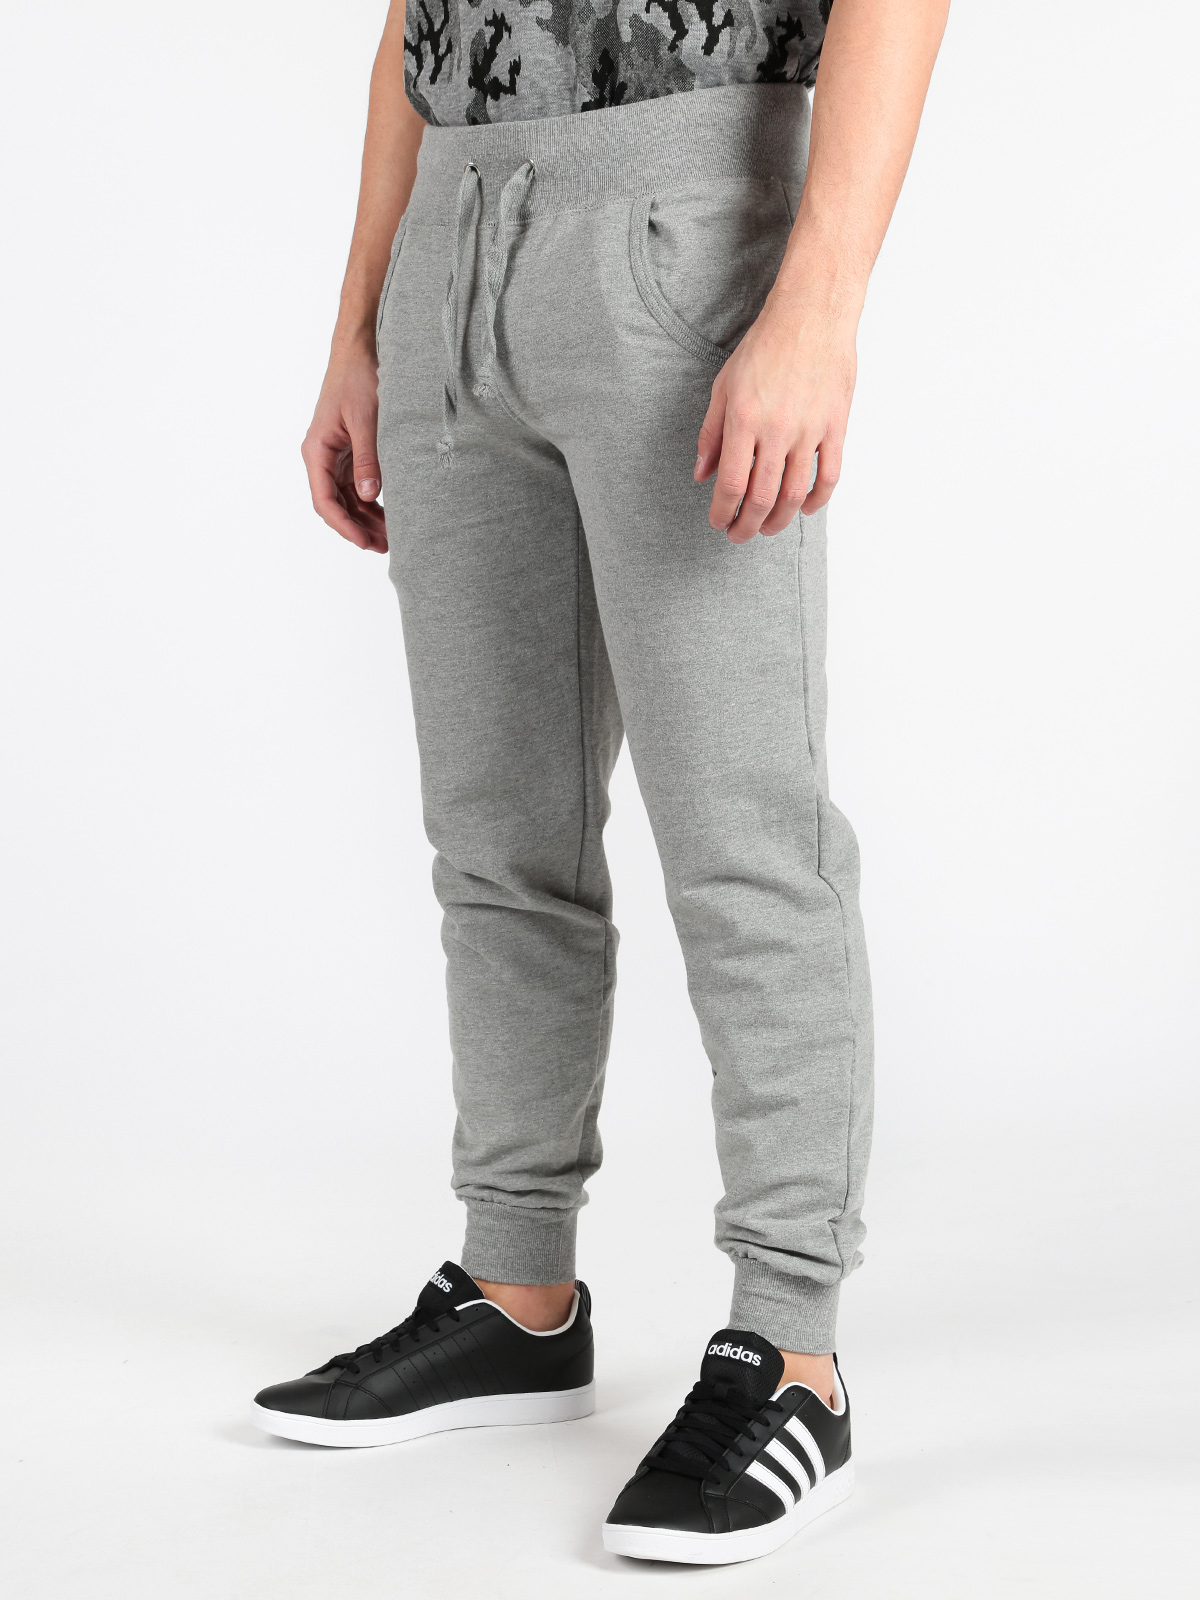 Sports Pants With Cuffs